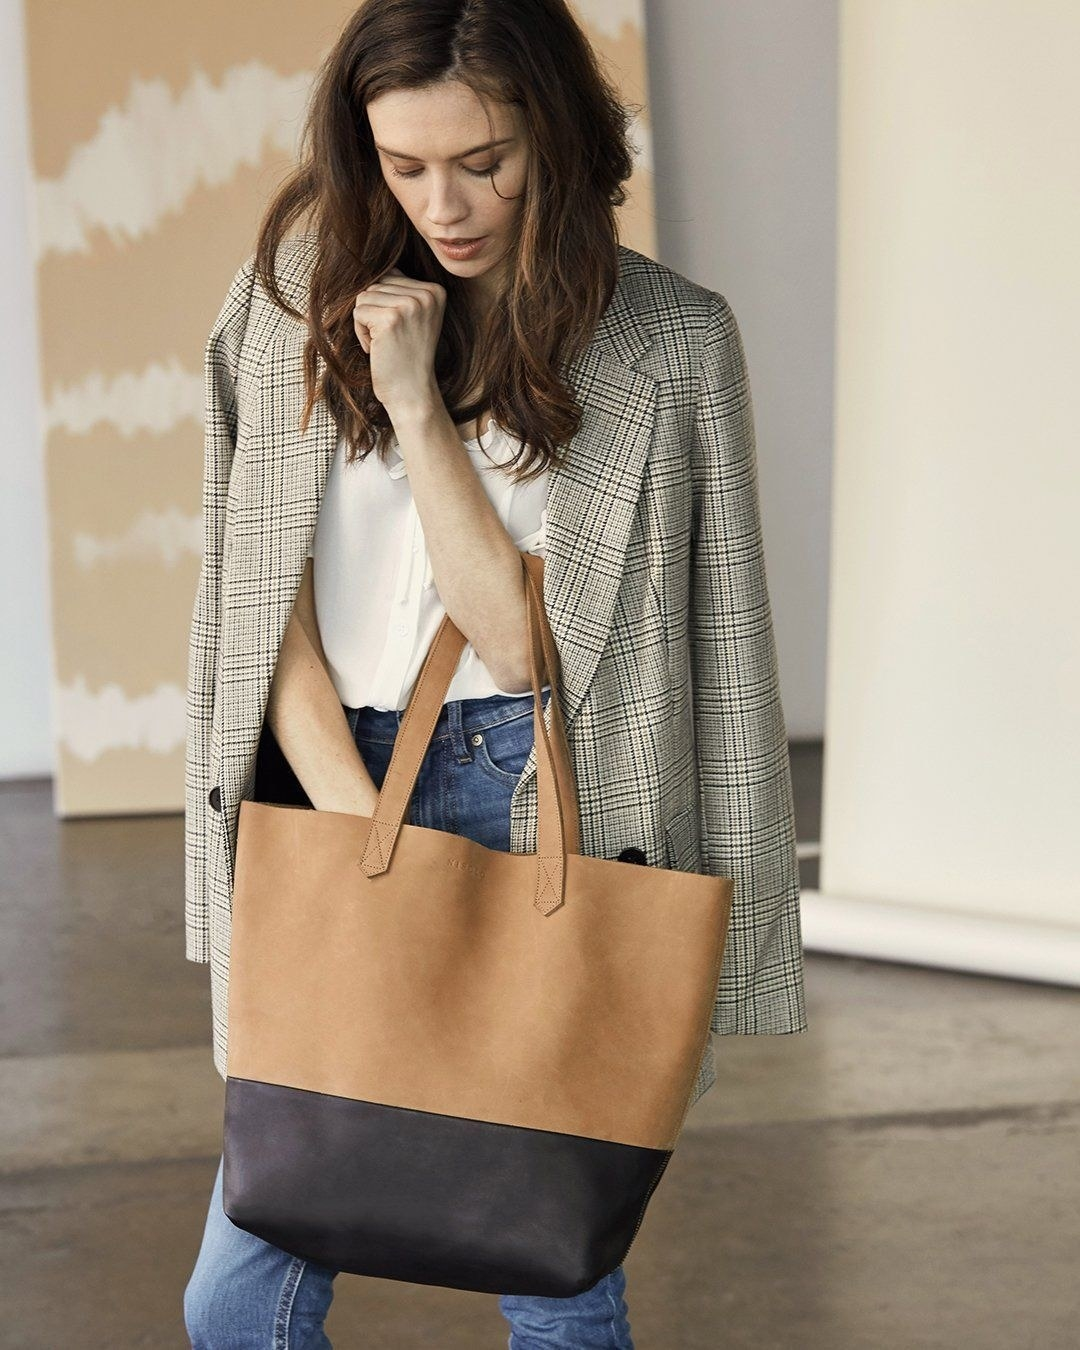 A model carrying the large tan tote with a black bottom panel